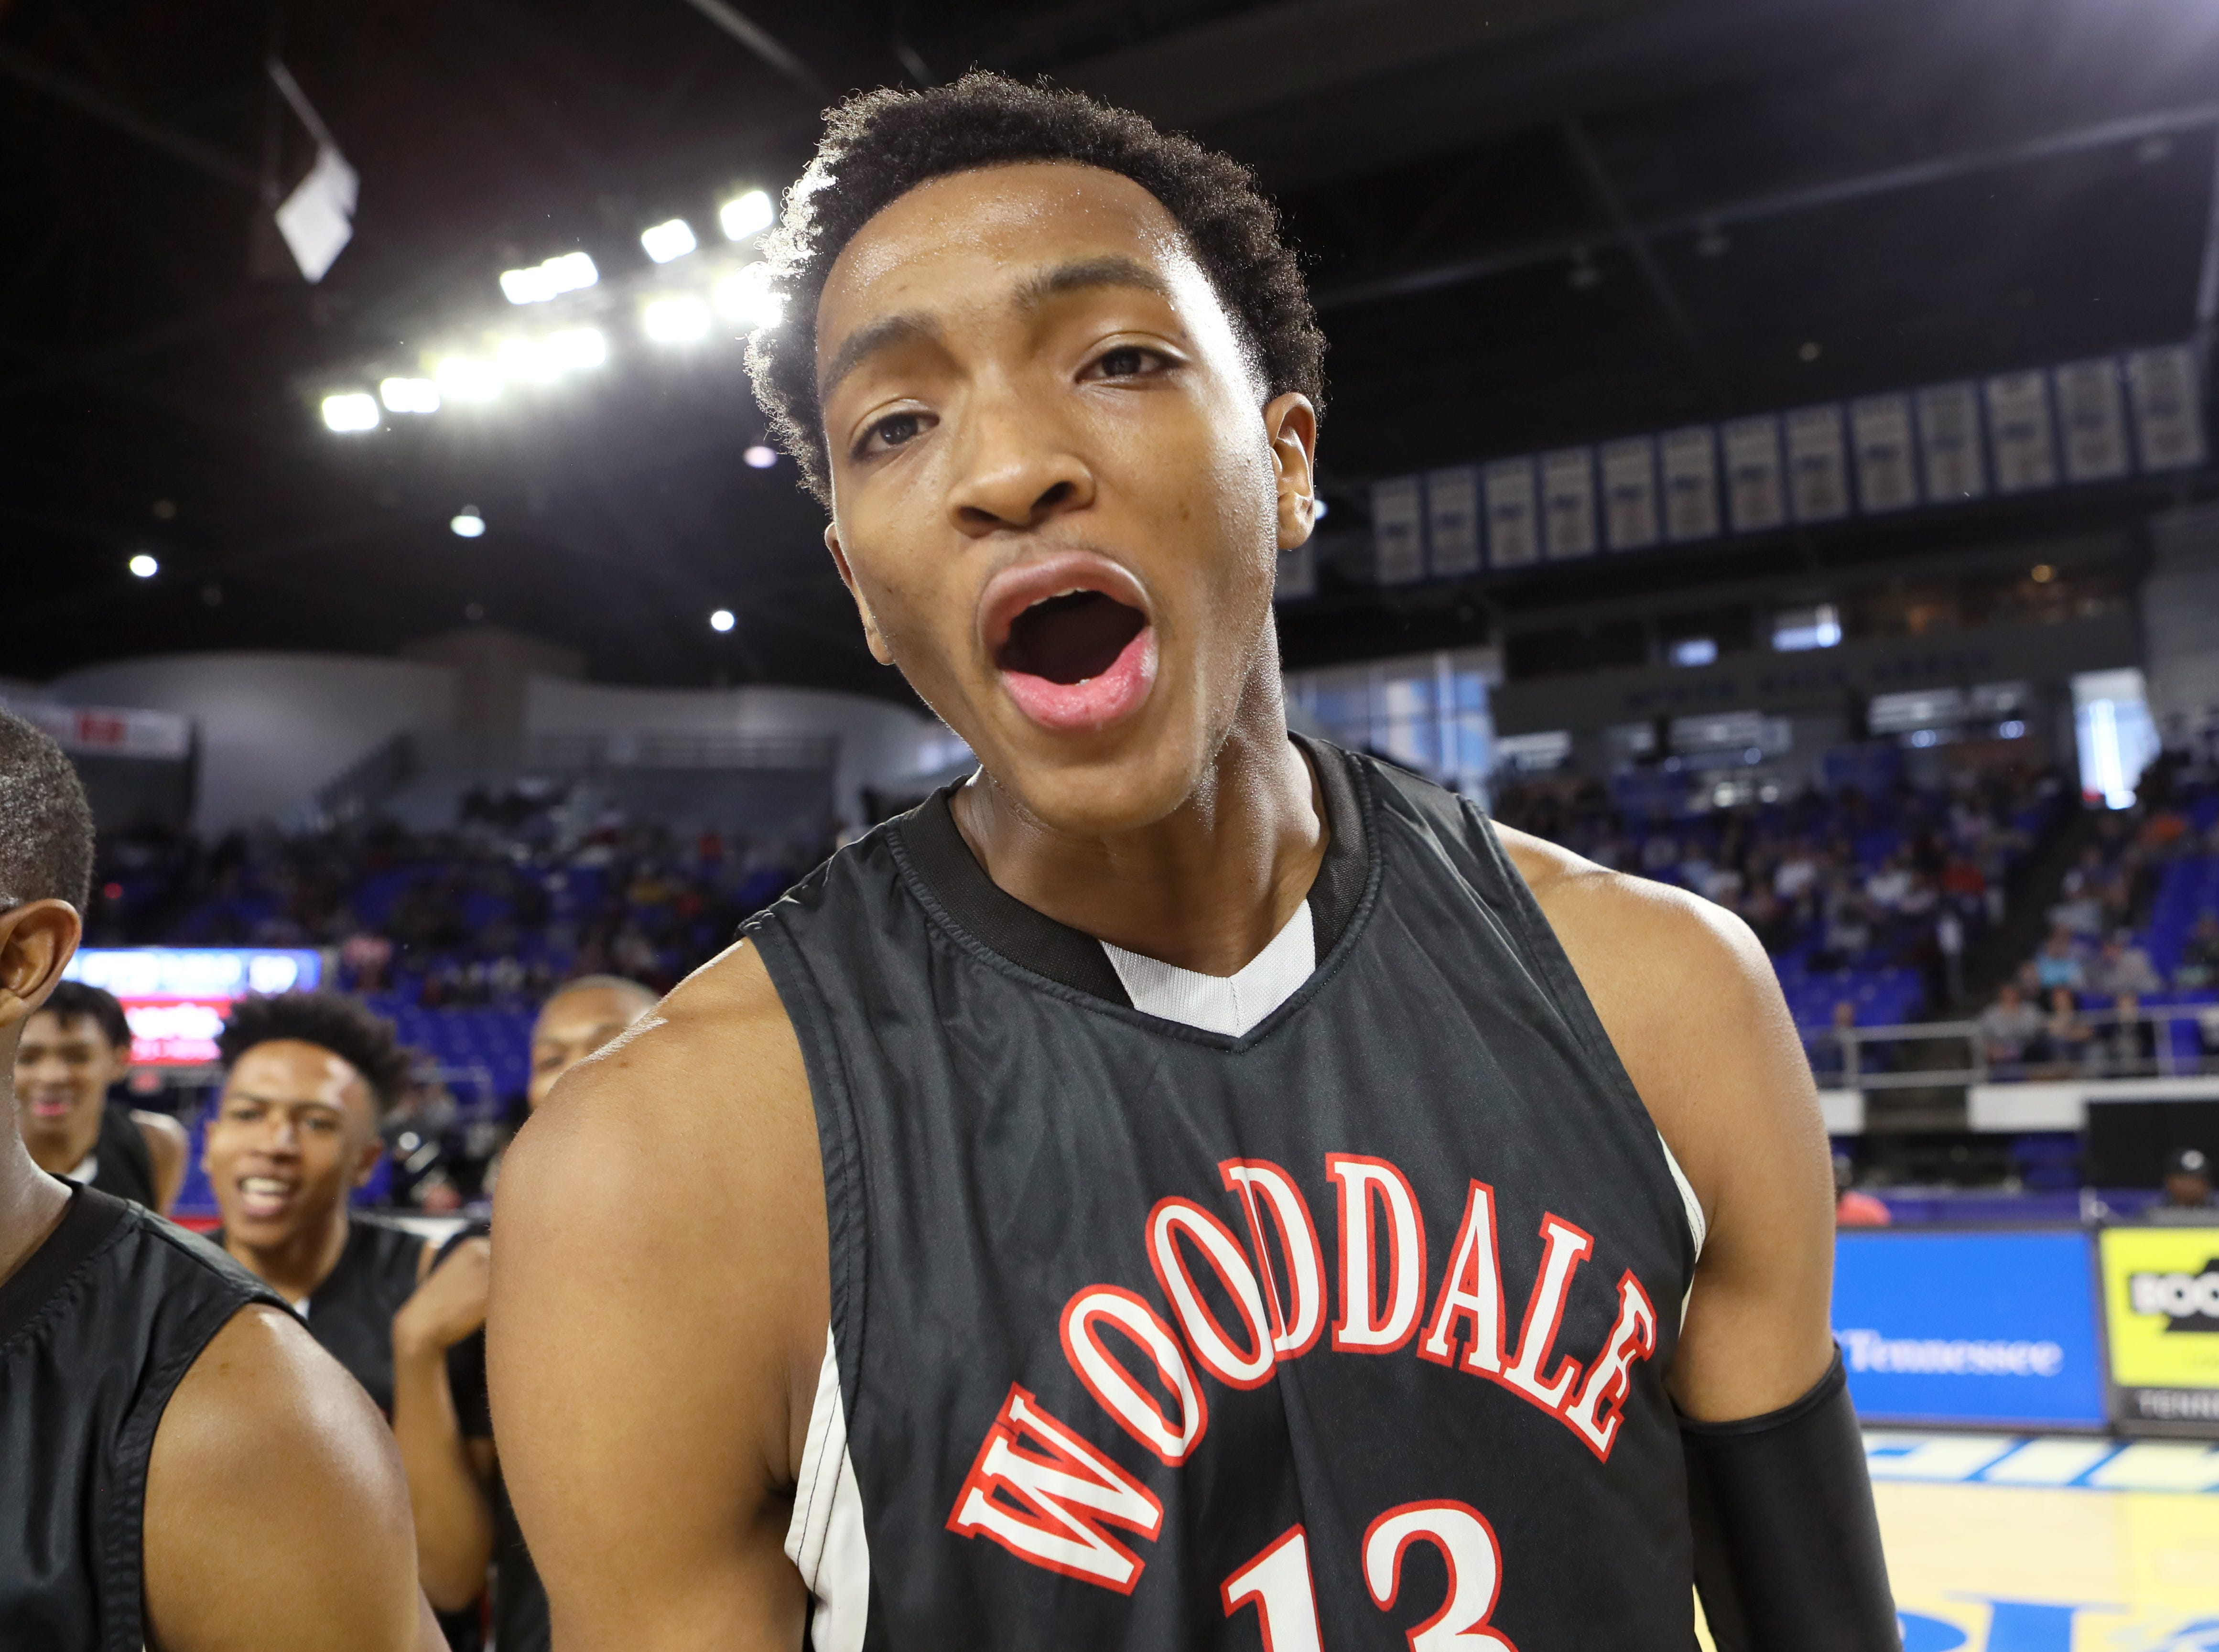 Wooddale's Chandler Lawson yells out in celebration of their 59-46 win over Fulton for the Class AA boys basketball state championship at the Murphy Center in Murfreesboro, Tenn. on Saturday, March 16, 2019.